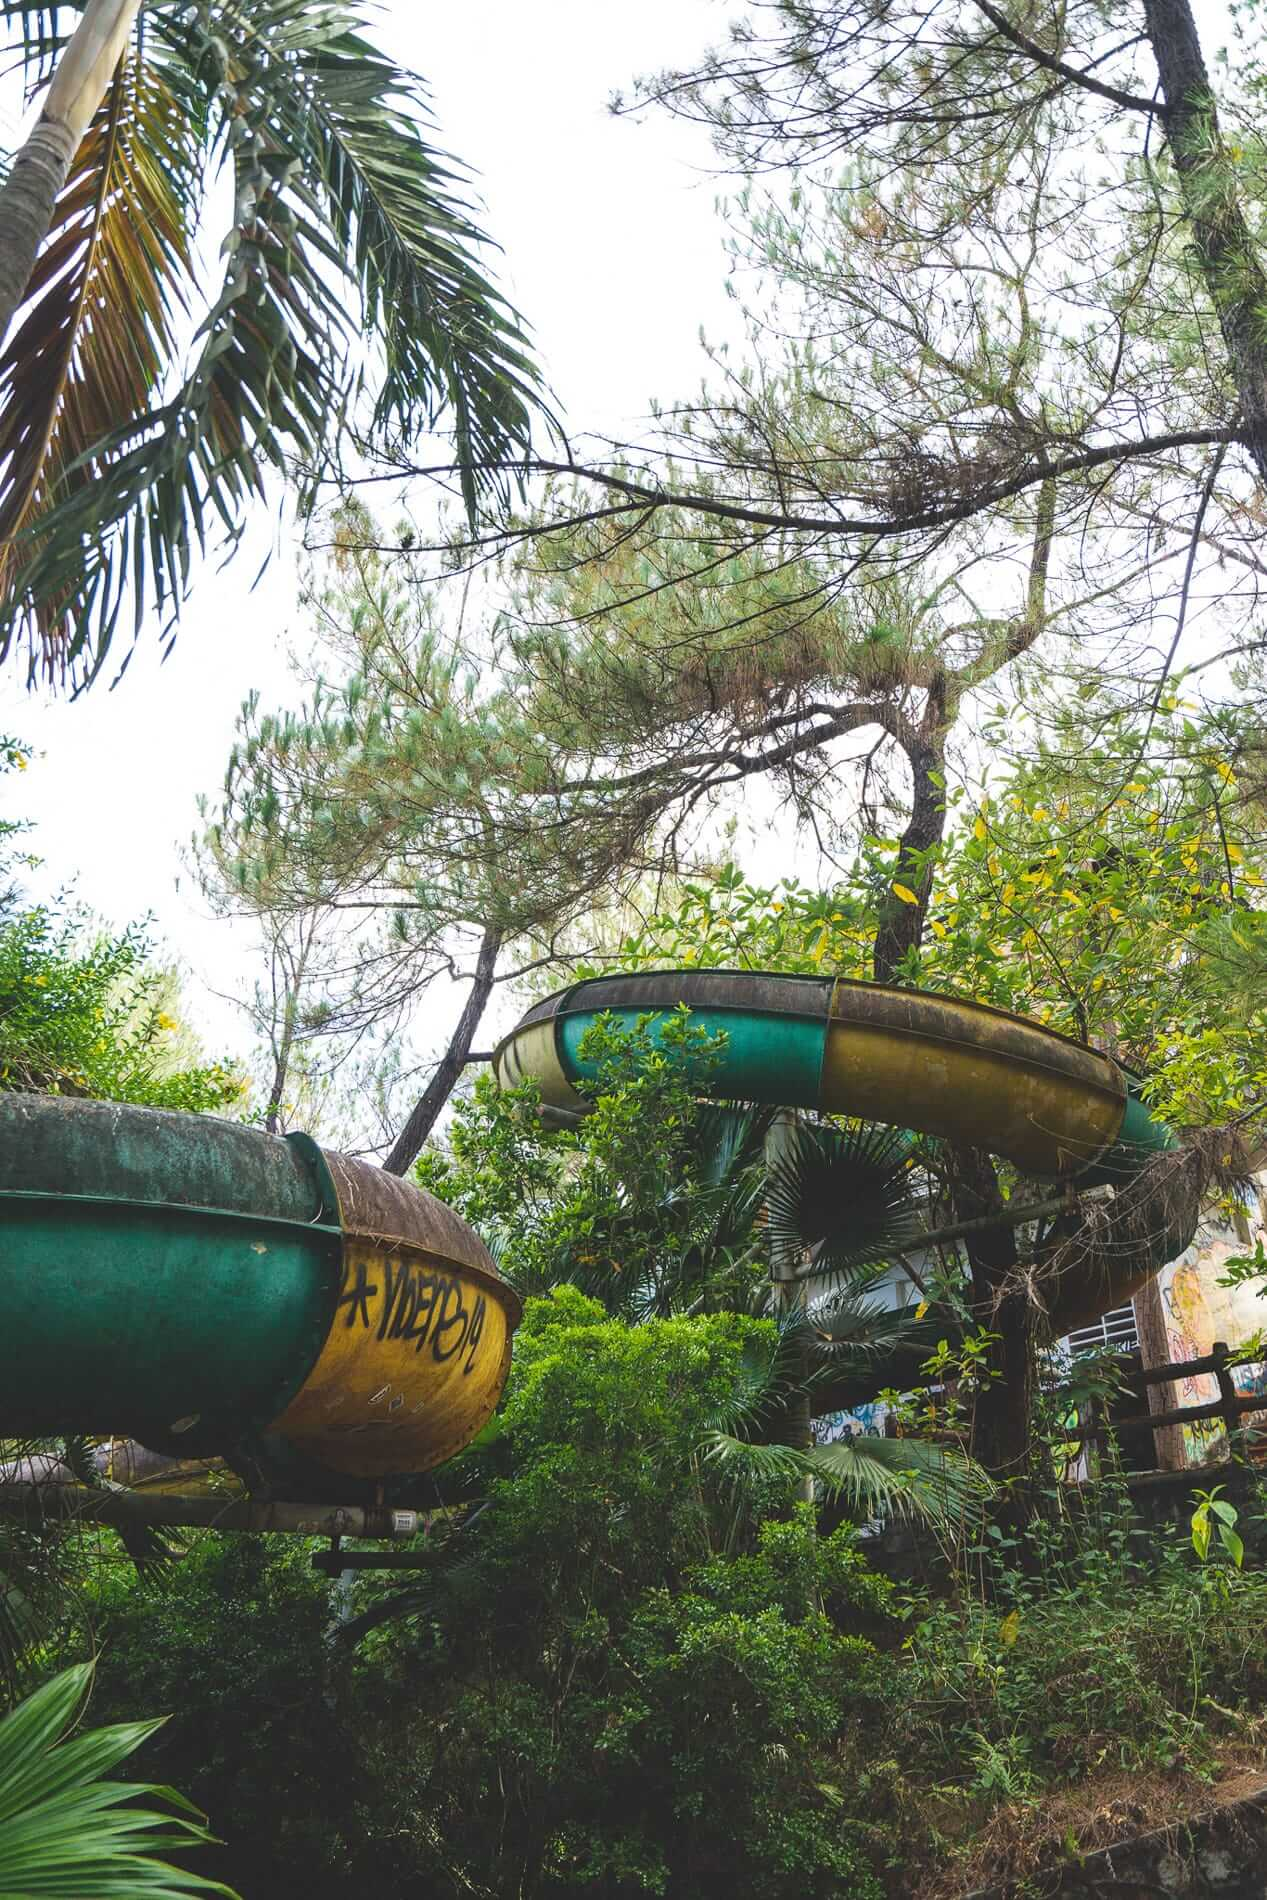 Decaying slide covered in trees - Hues Abandoned Water Park